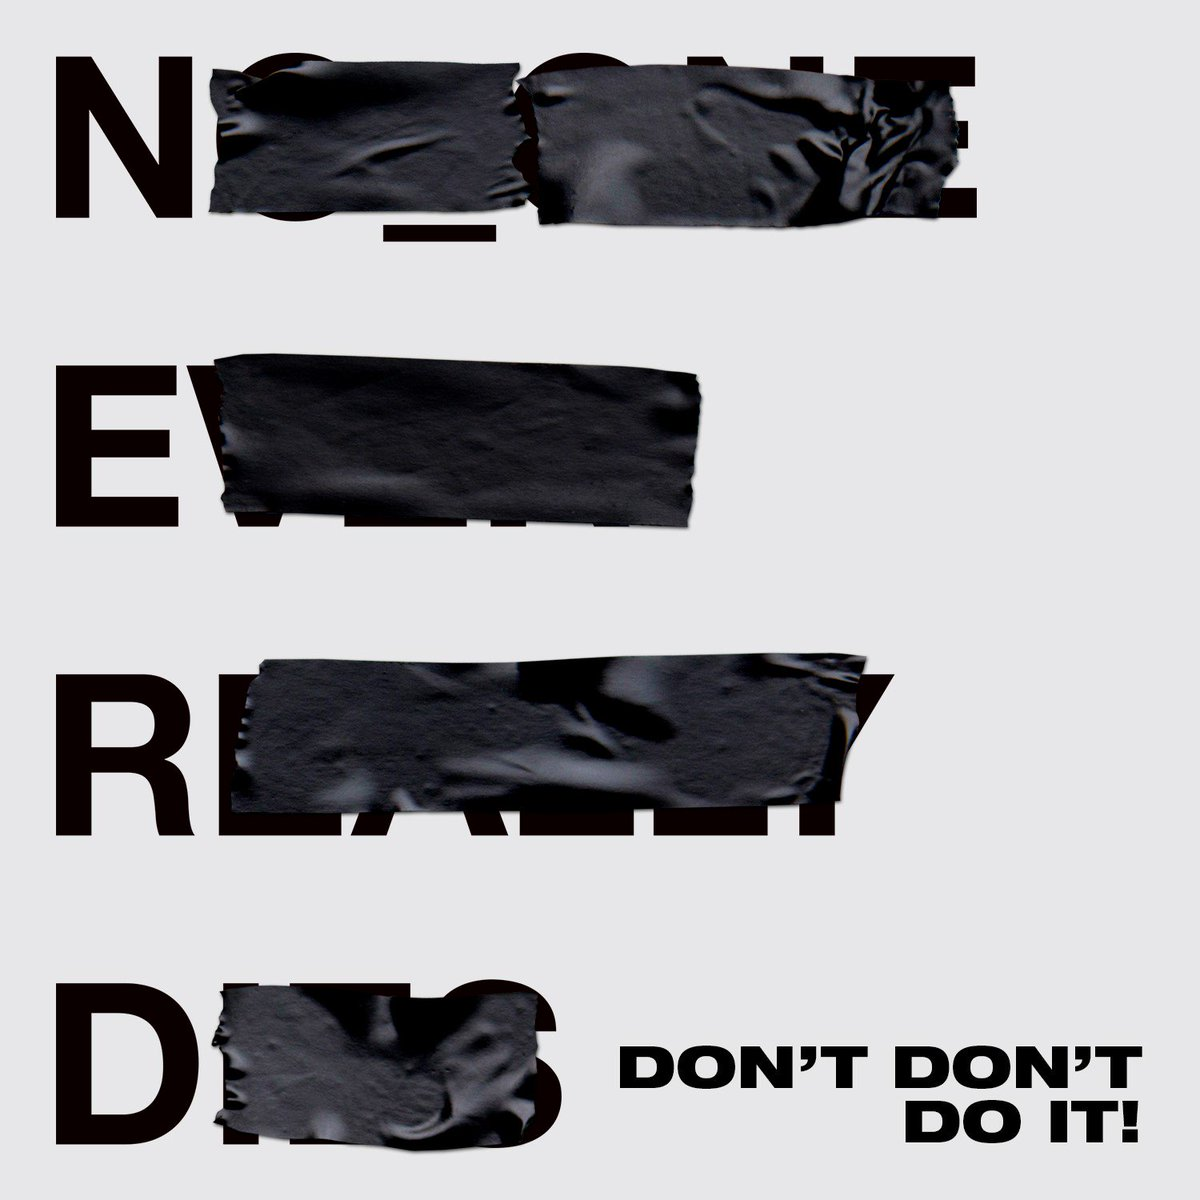 .@NERDarmy featuring @KendrickLamar 'Don't Don't Do It!' https://t.co/uRK0EVhtjK #NOONEEVERREALLYDIES https://t.co/8bYWK24dqe